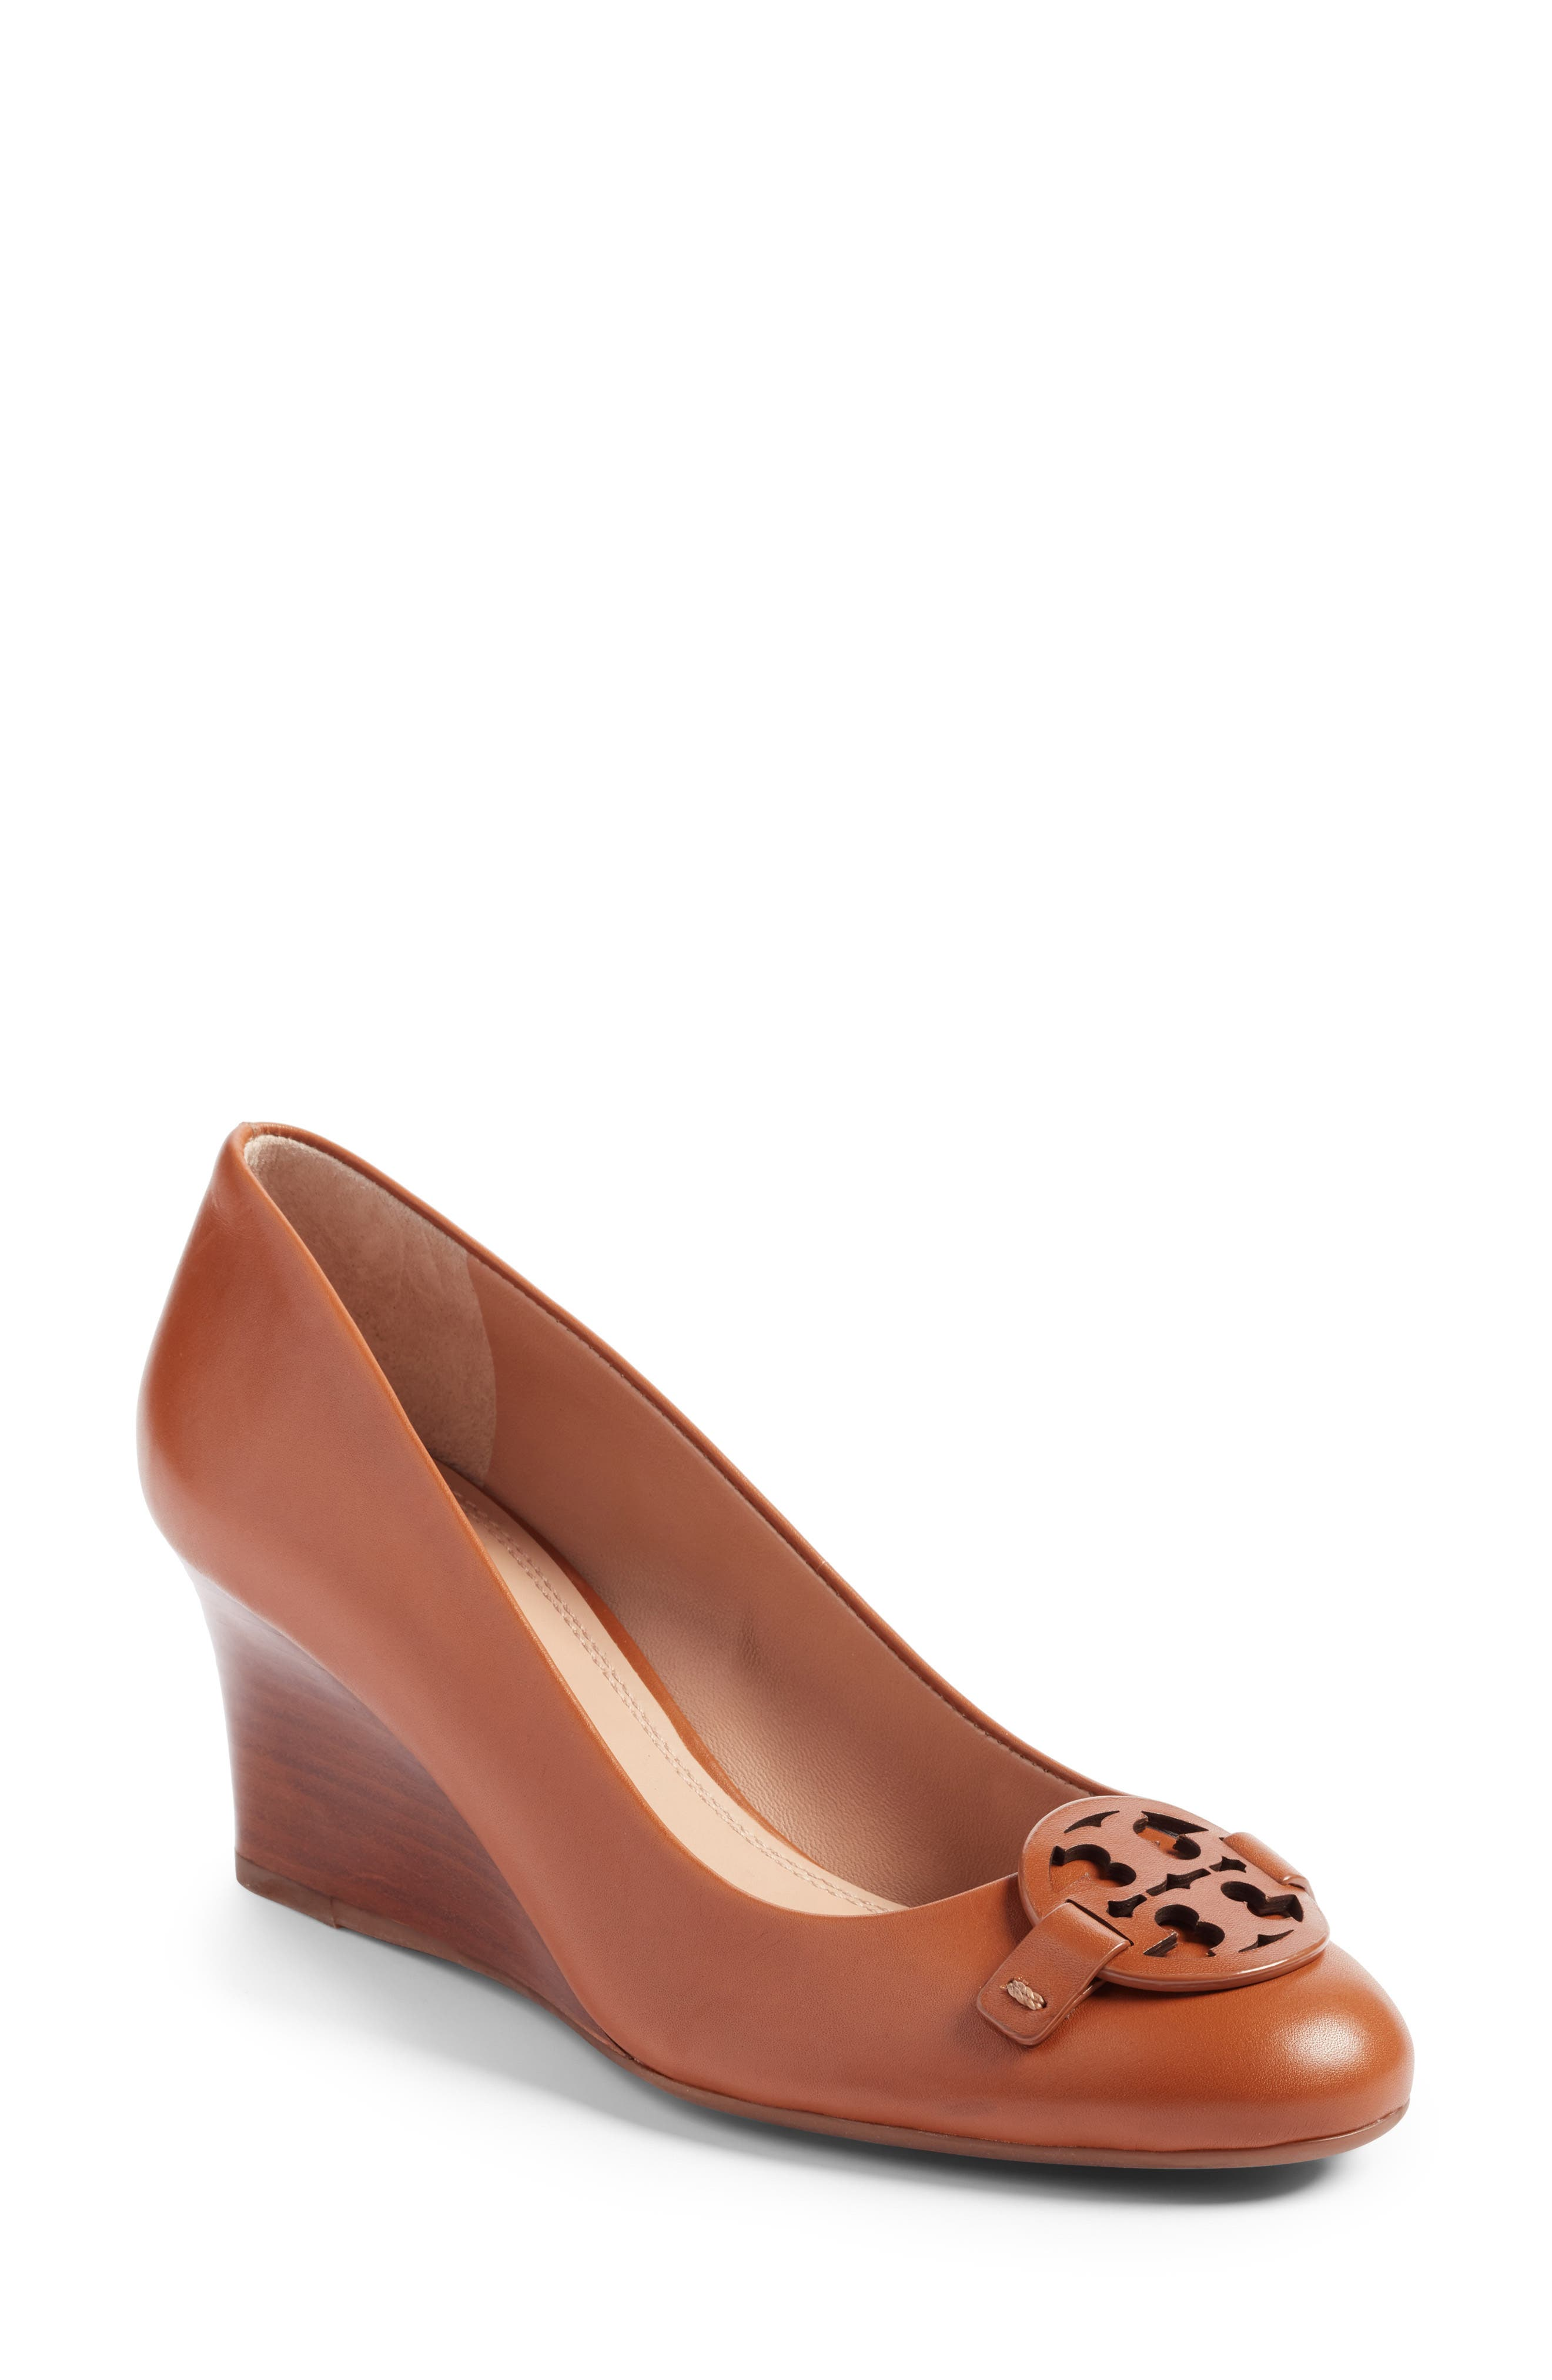 TORY BURCH Miller Wedge Pump